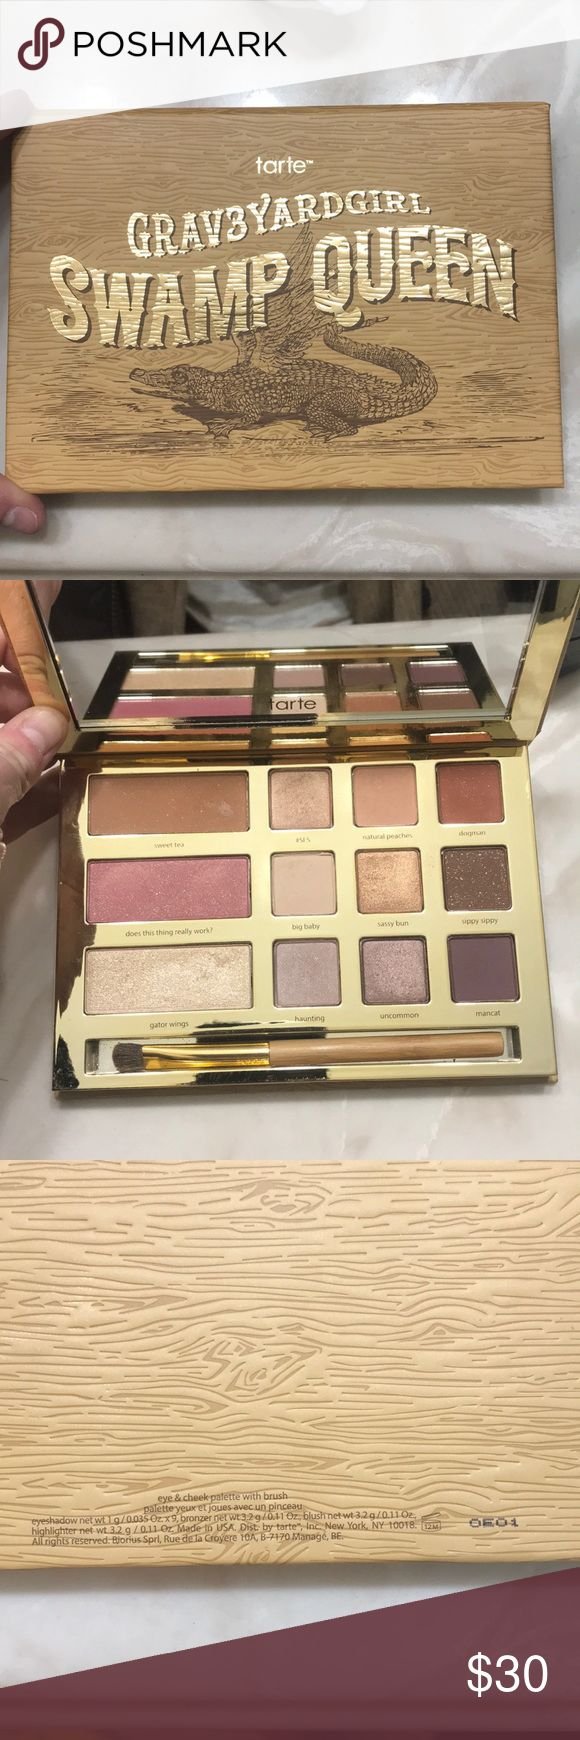 Tarte Limited Edition Eyeshadow Palette Used 2-3 times. Like brand new! Limited Edition Graveyard Girl Palette! tarte Makeup Eyeshadow